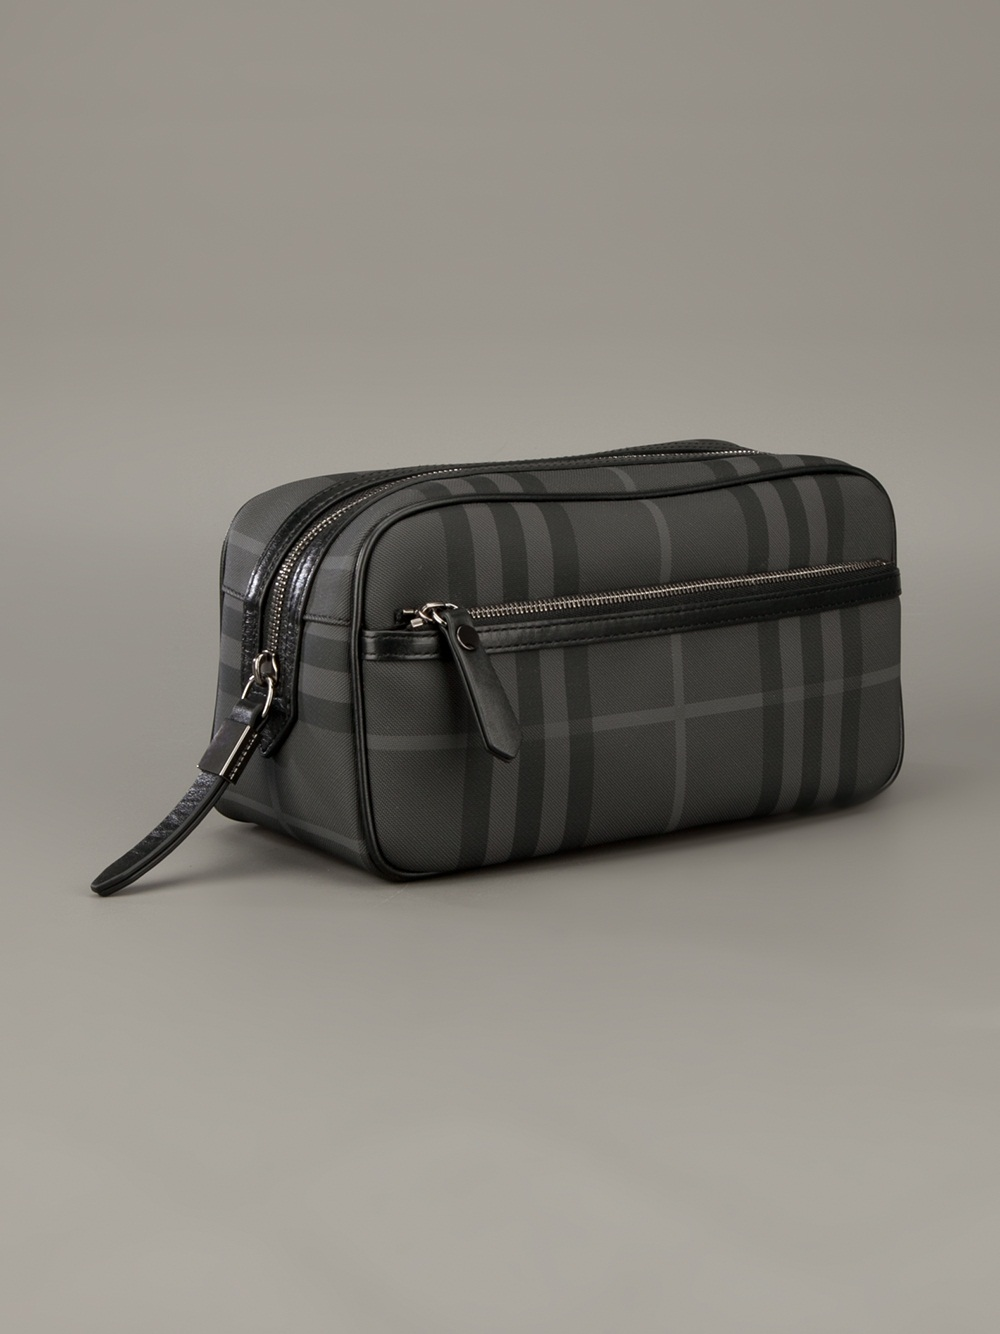 Lyst - Burberry Brit Checked Wash Bag in Gray for Men 23df11742af98